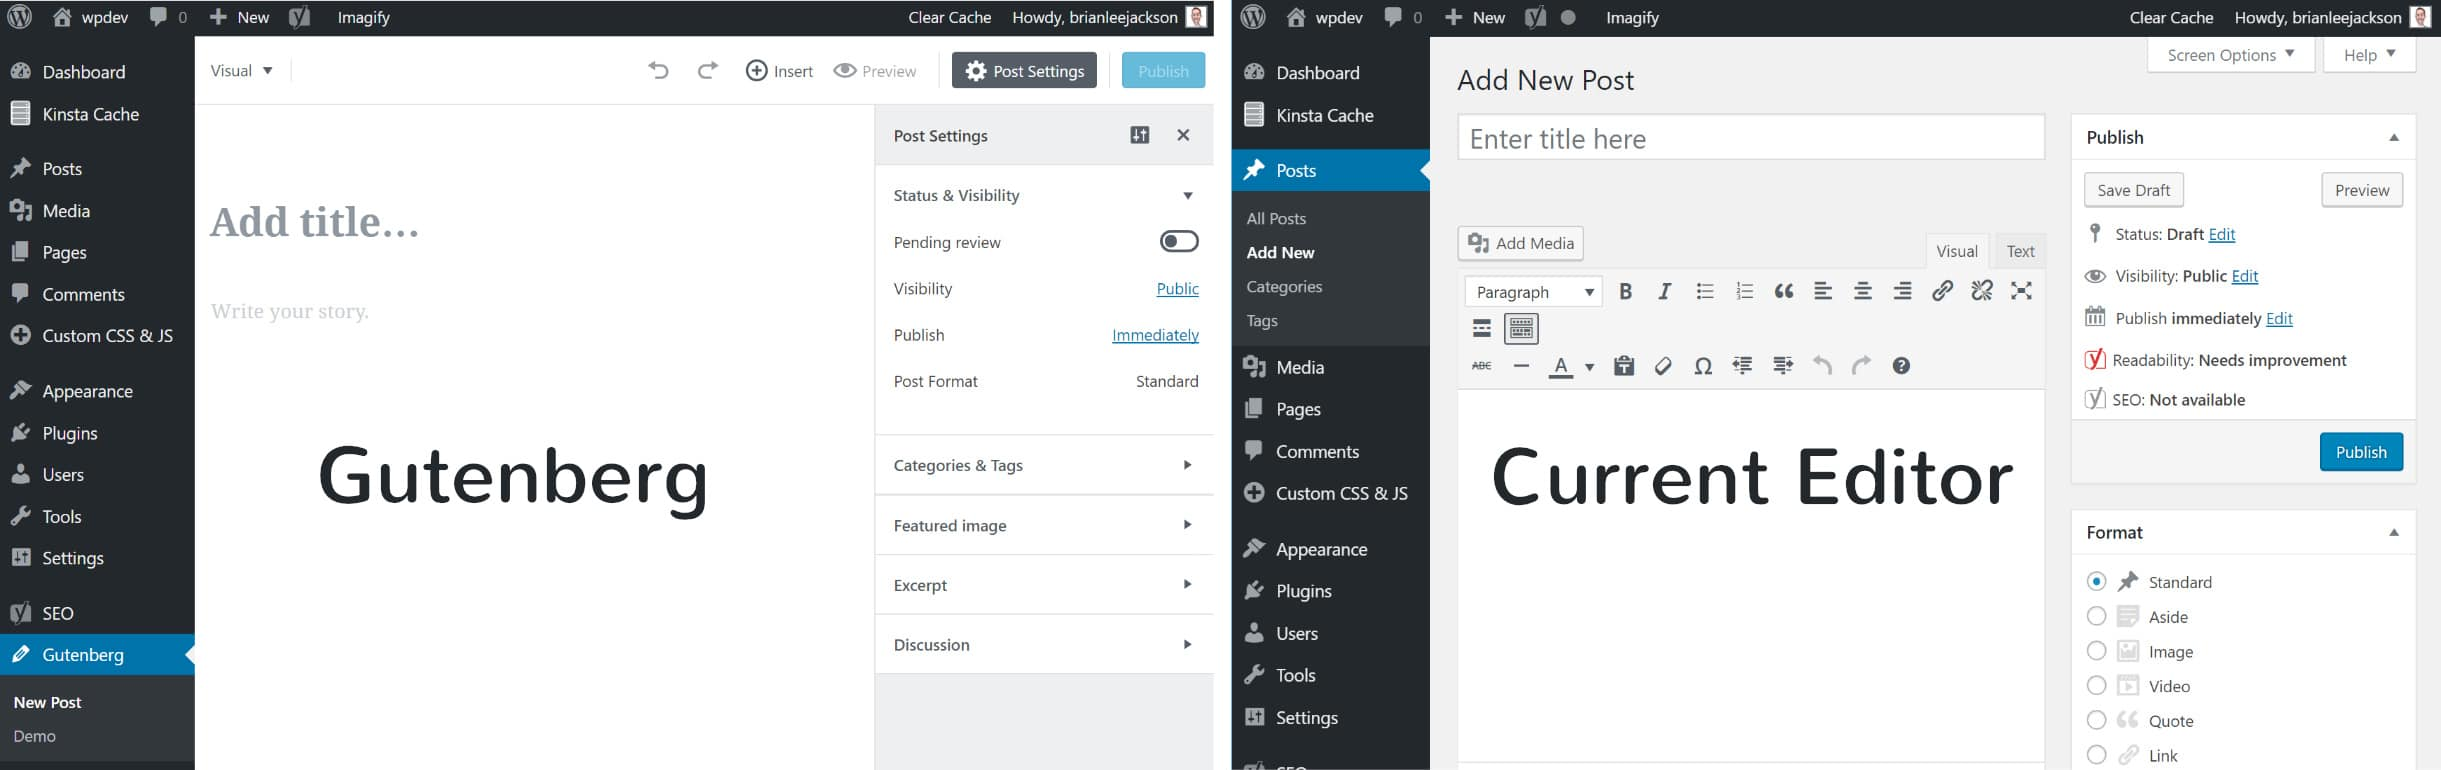 Everything you need to know about Gutenberg— the new WordPress editor 2